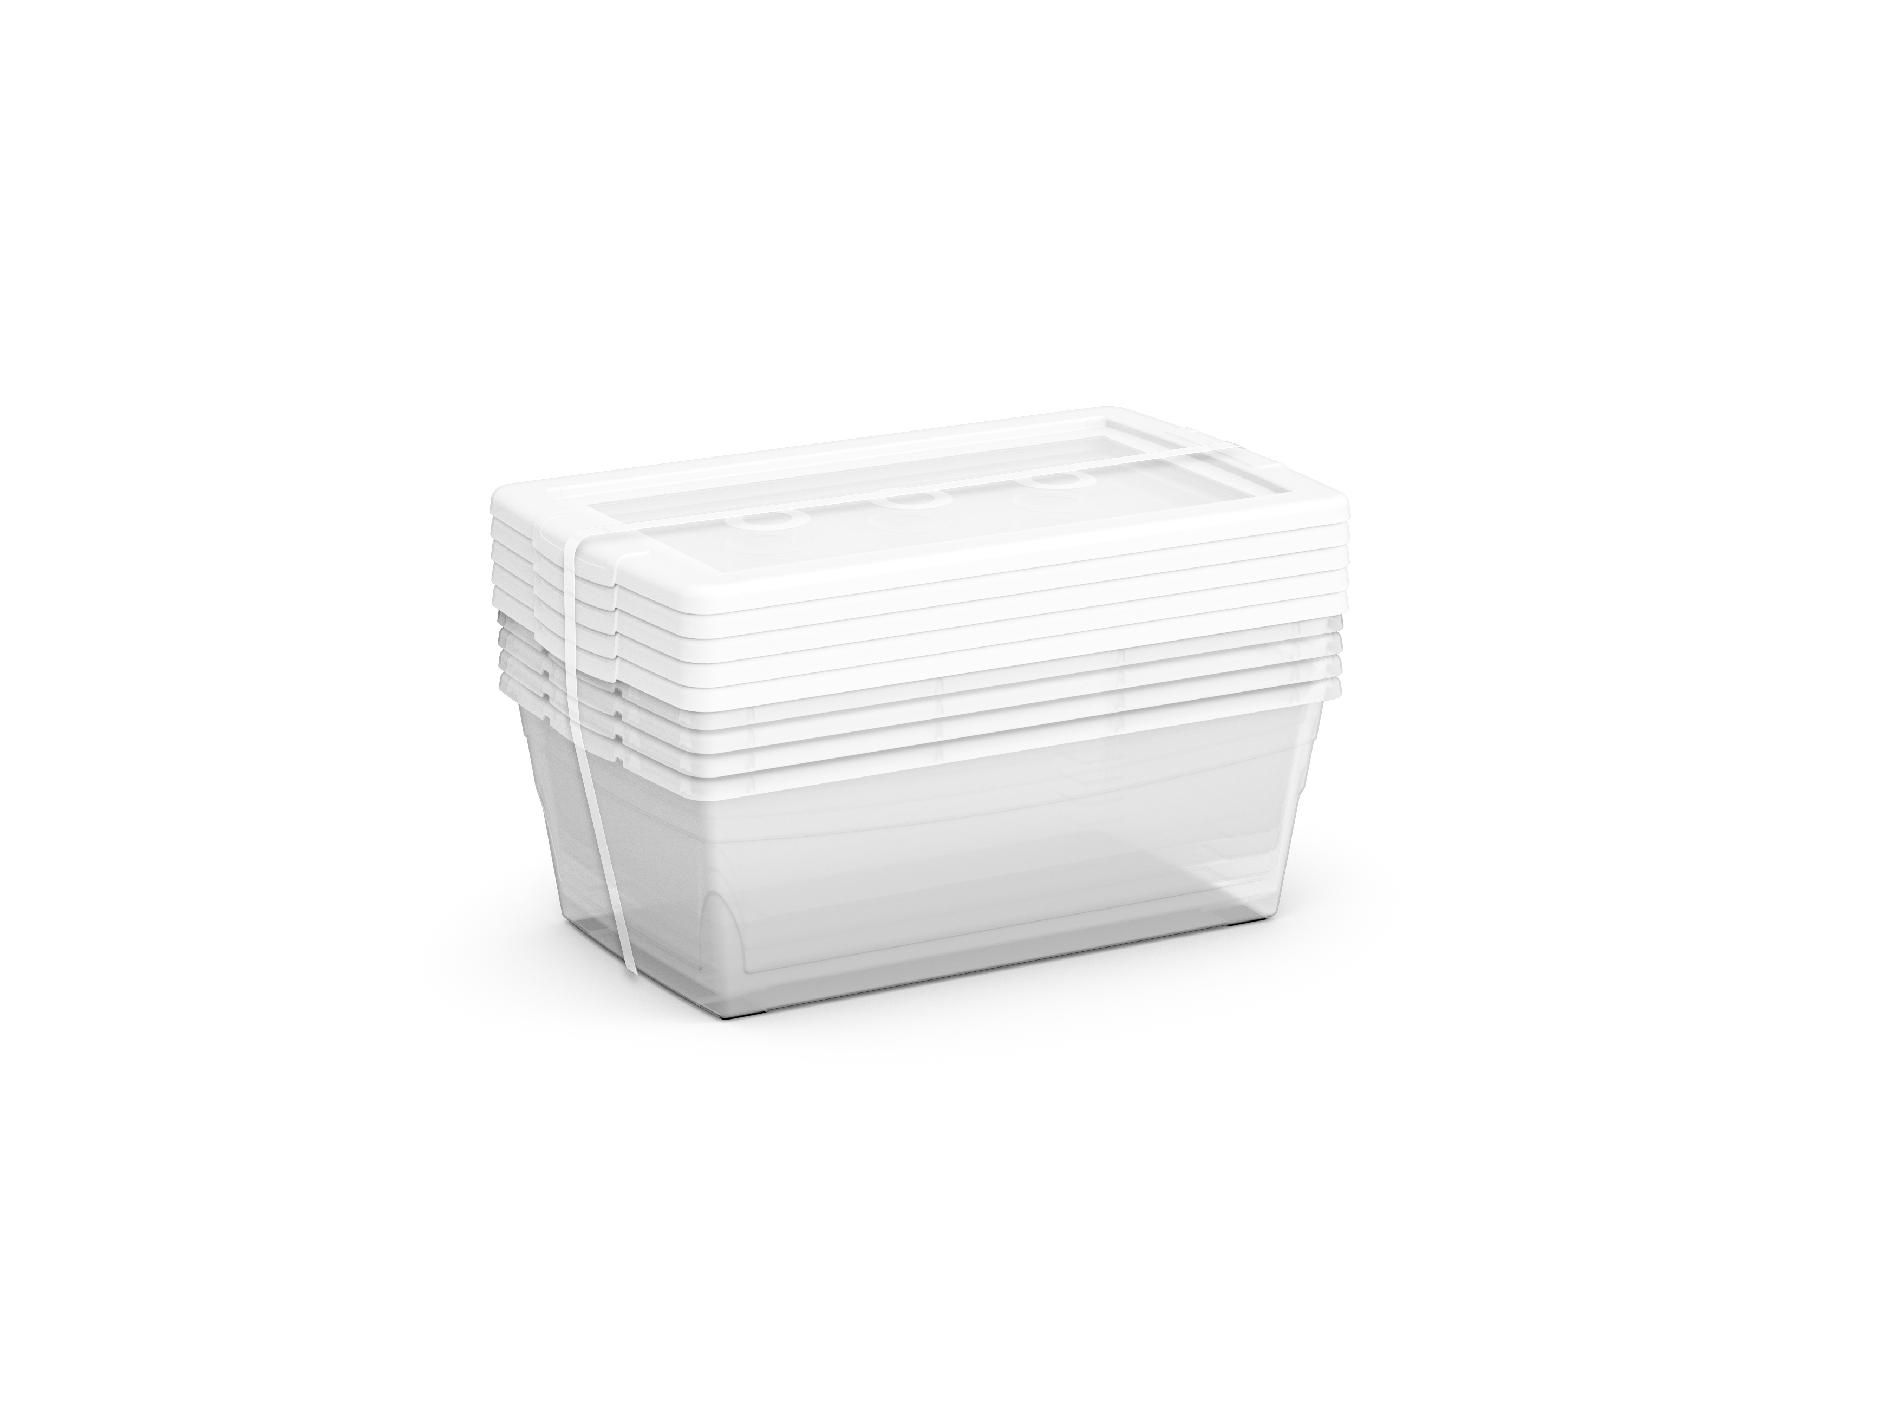 KIS 5pk 6.5 QT Clear Container Box